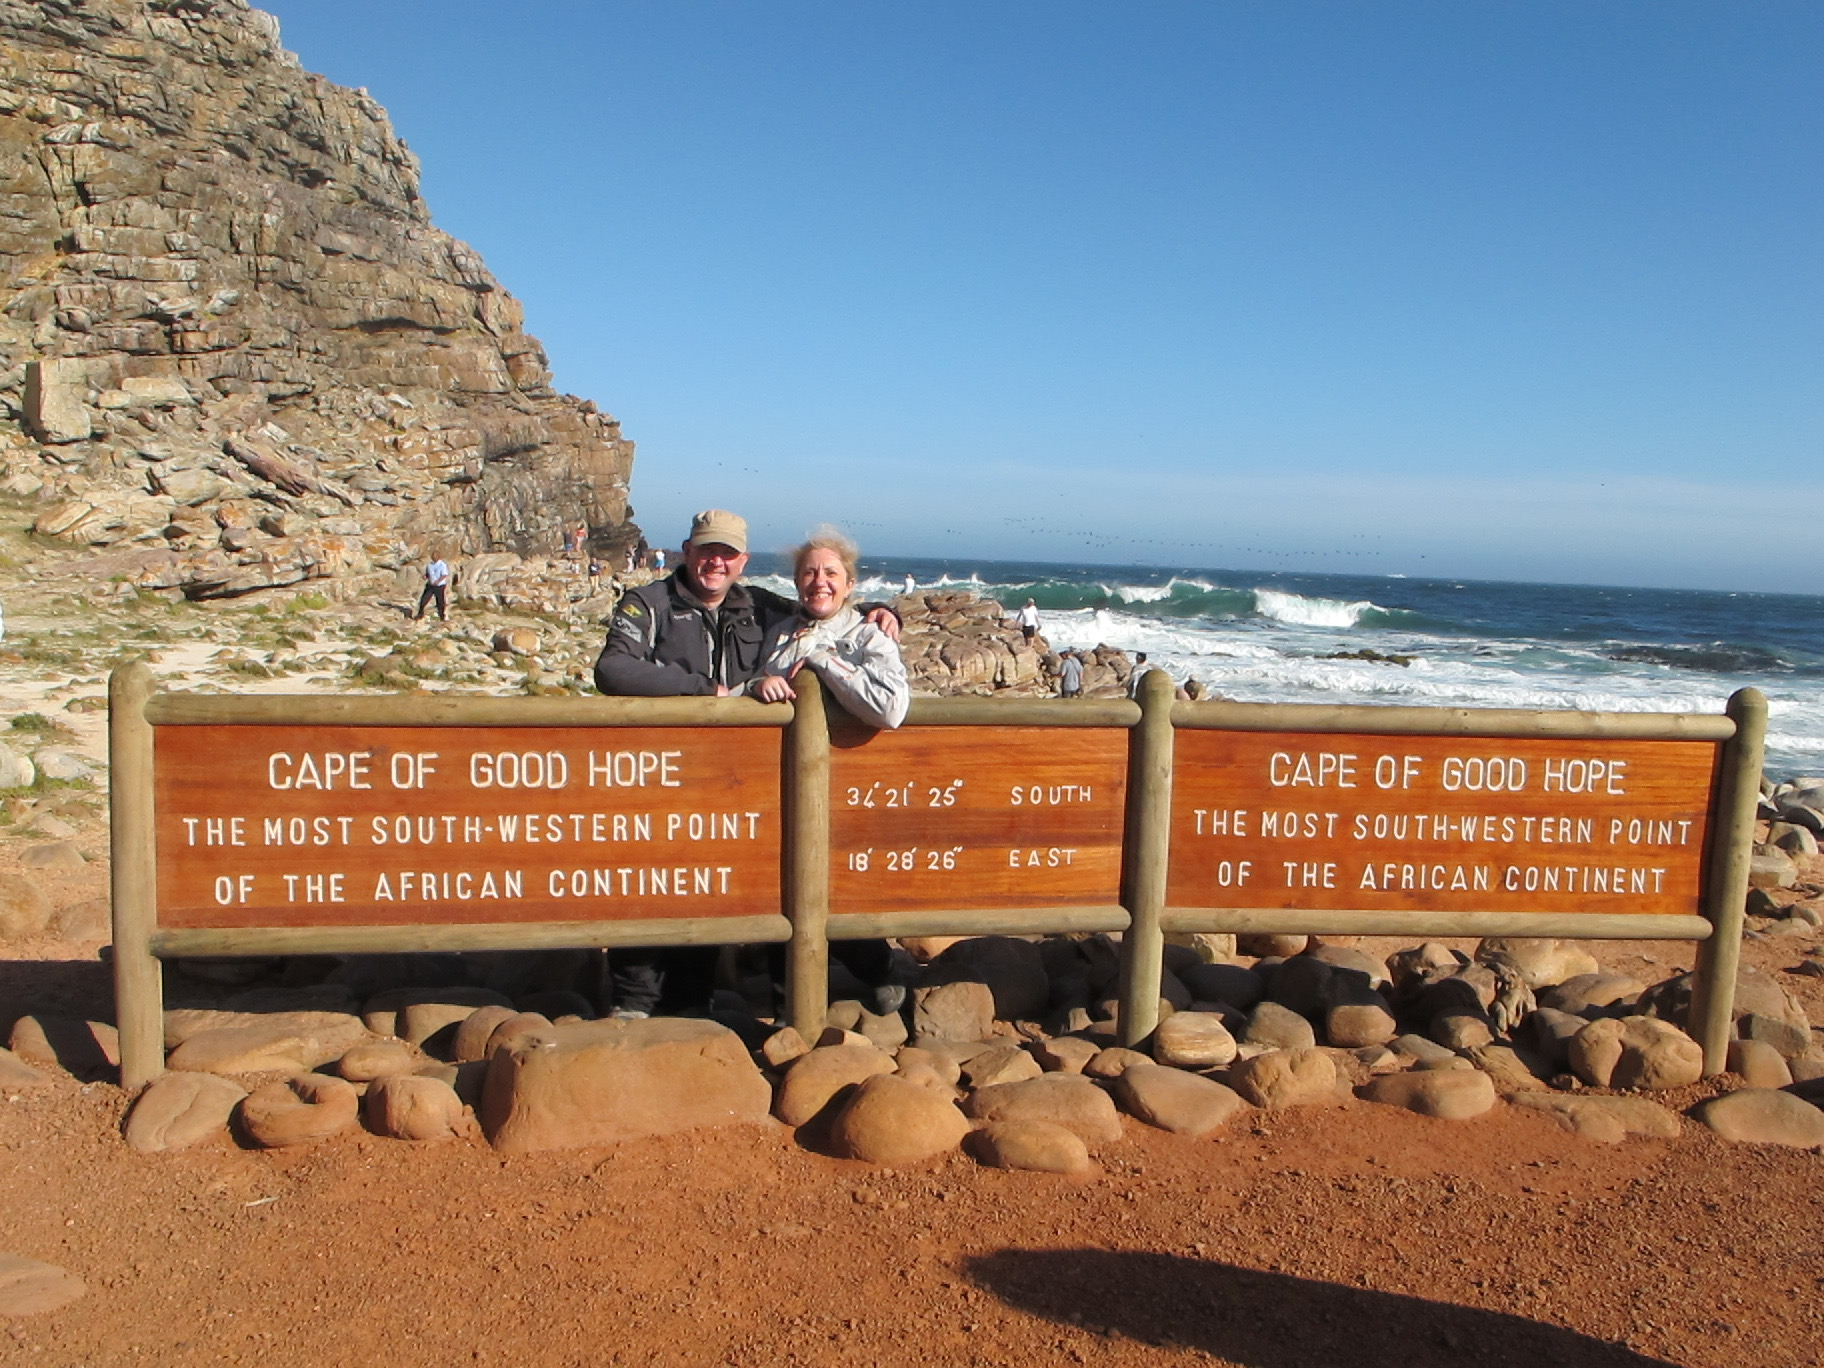 It's not, however the most southerly point, that's Cape Agulhas.